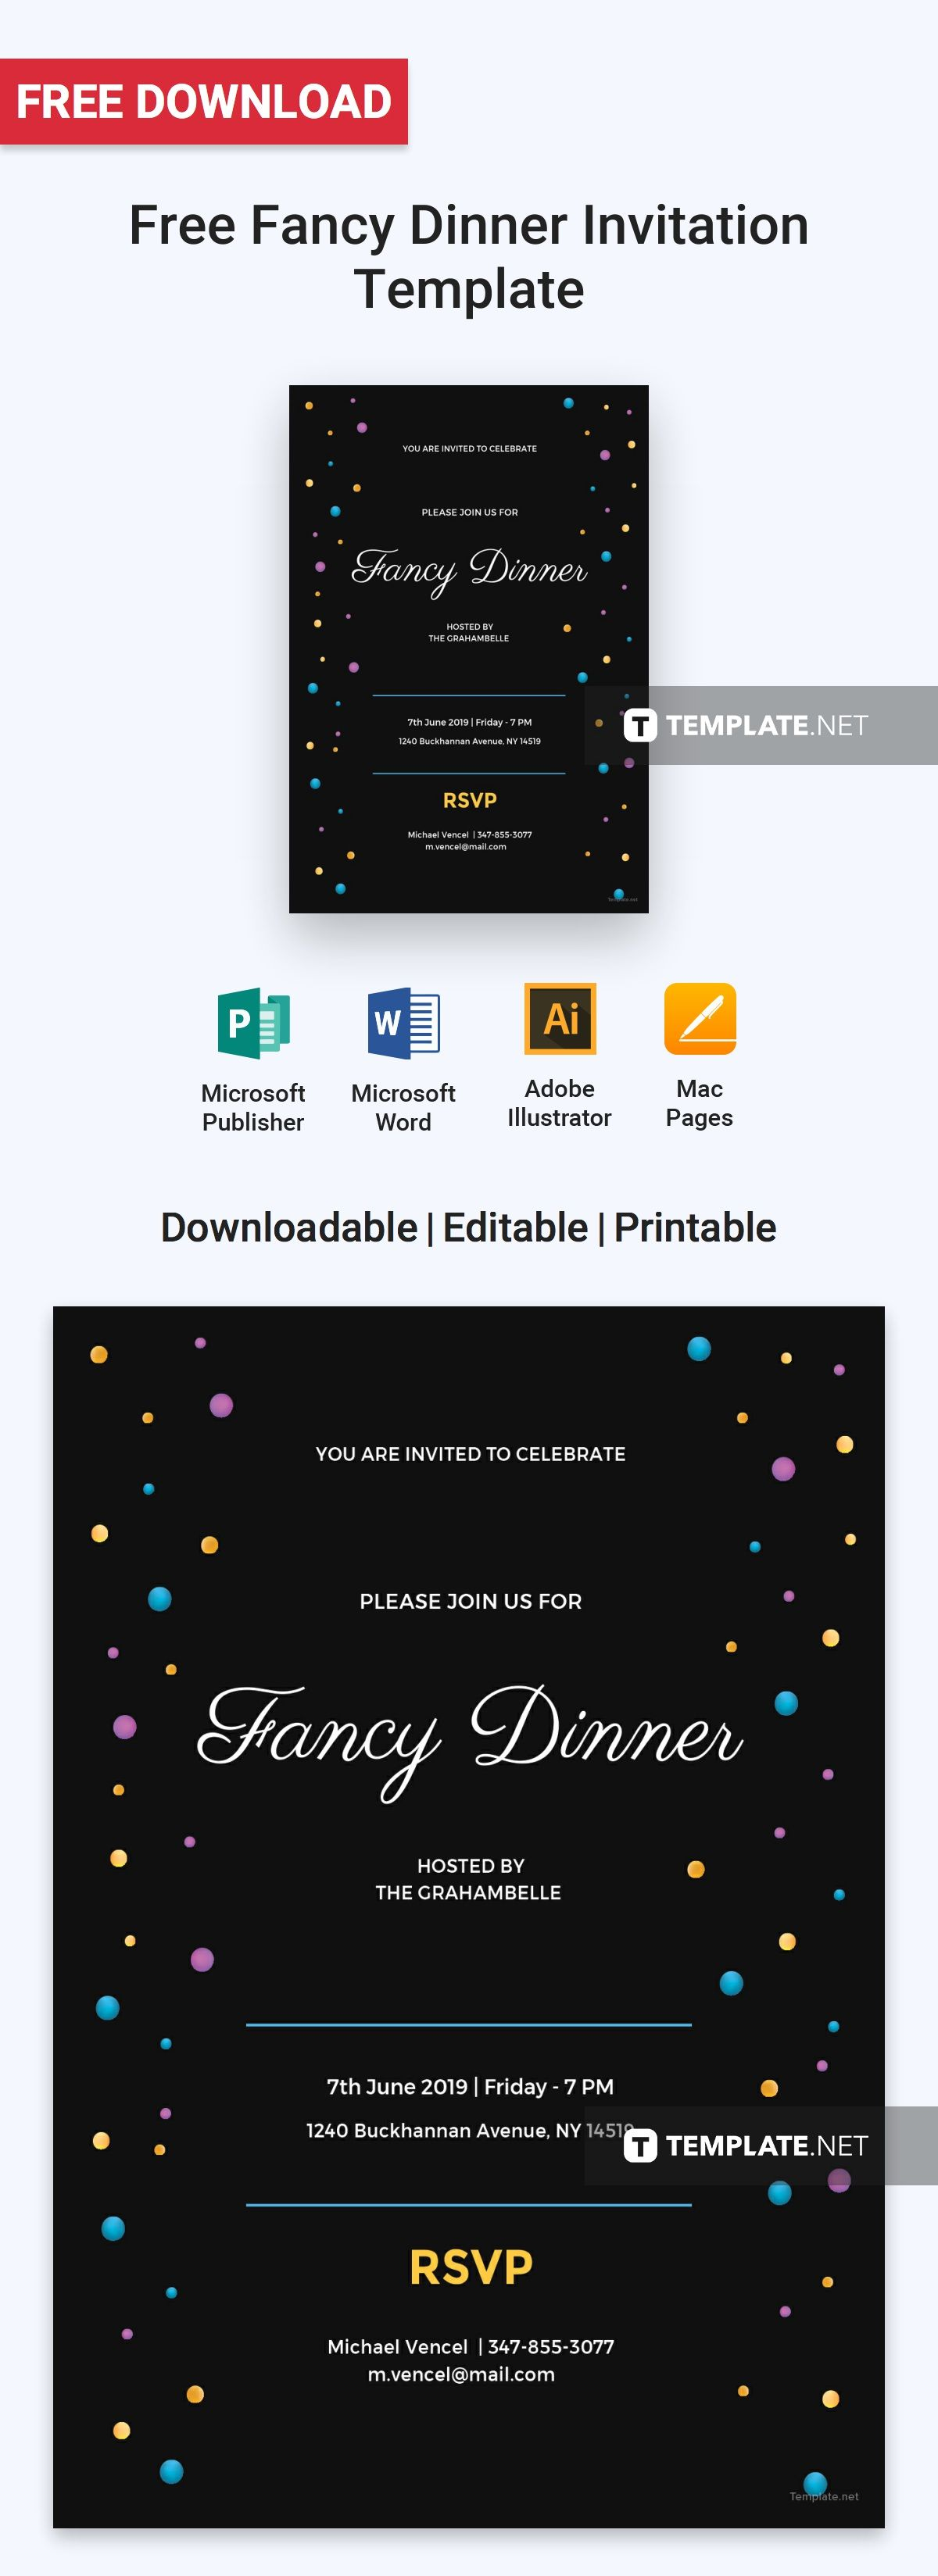 free fancy dinner invitation invitation templates designs 2019